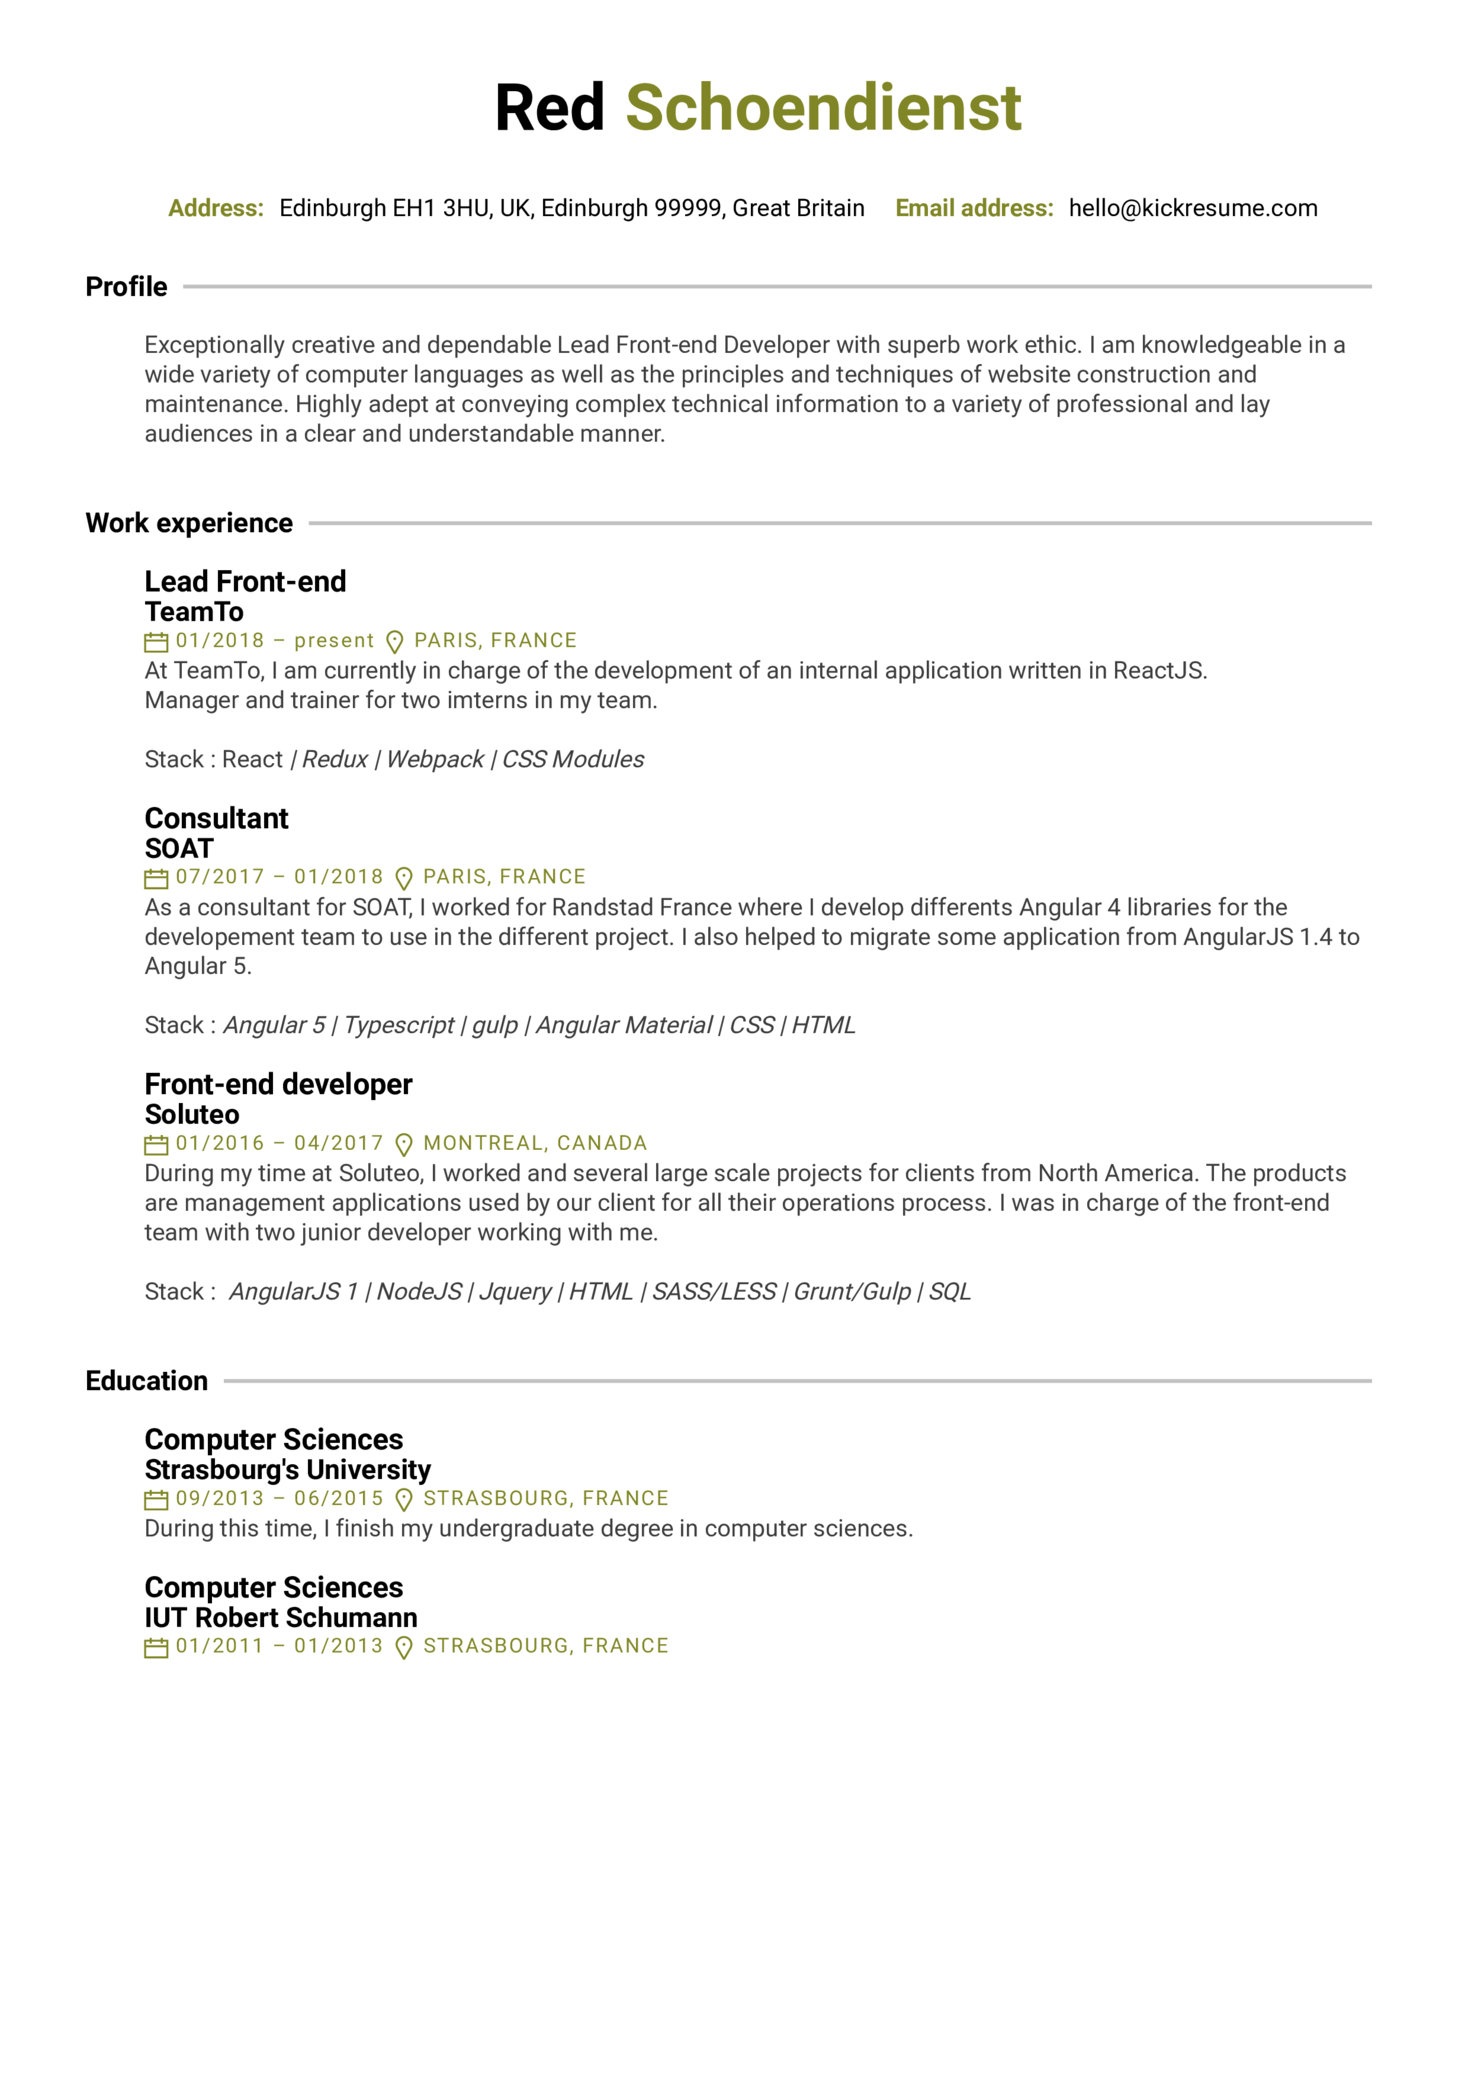 resume examples by real people  teamto lead front